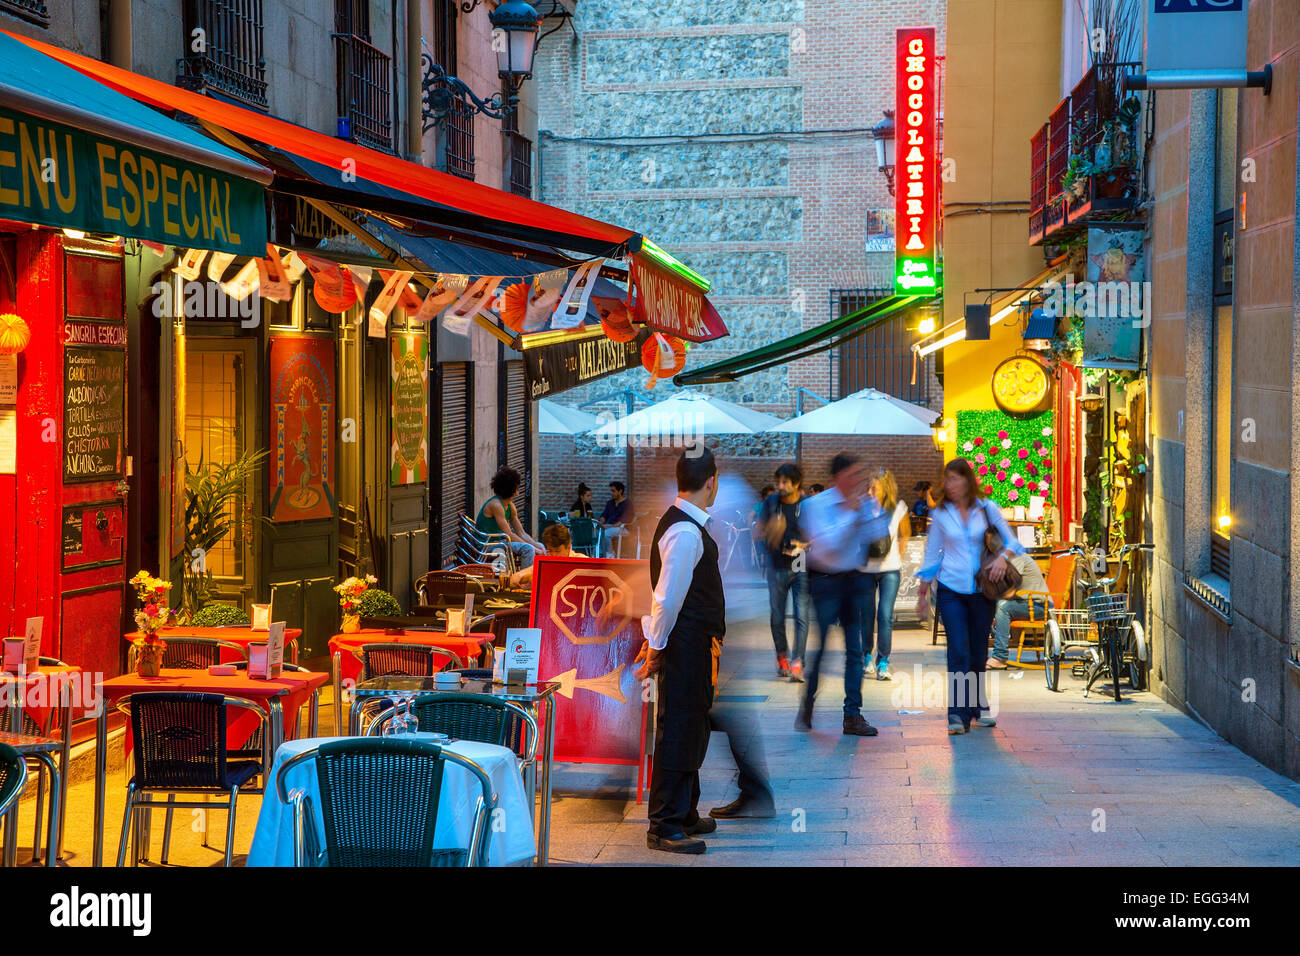 Madrid, street cafe near Plaza Mayor - Stock Image